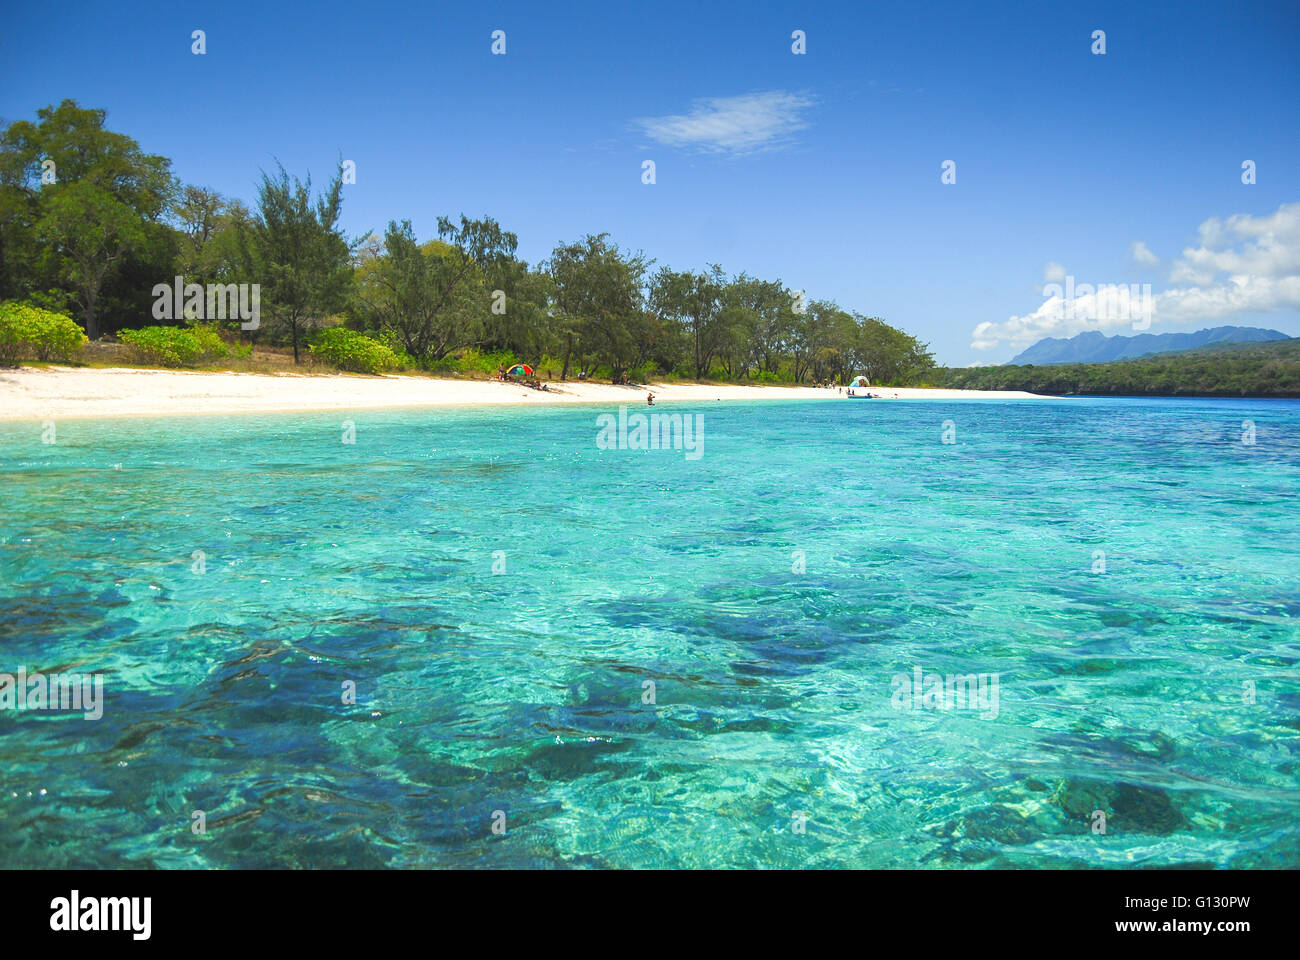 Tropical beaches on Jaco island in East Timor - Stock Image